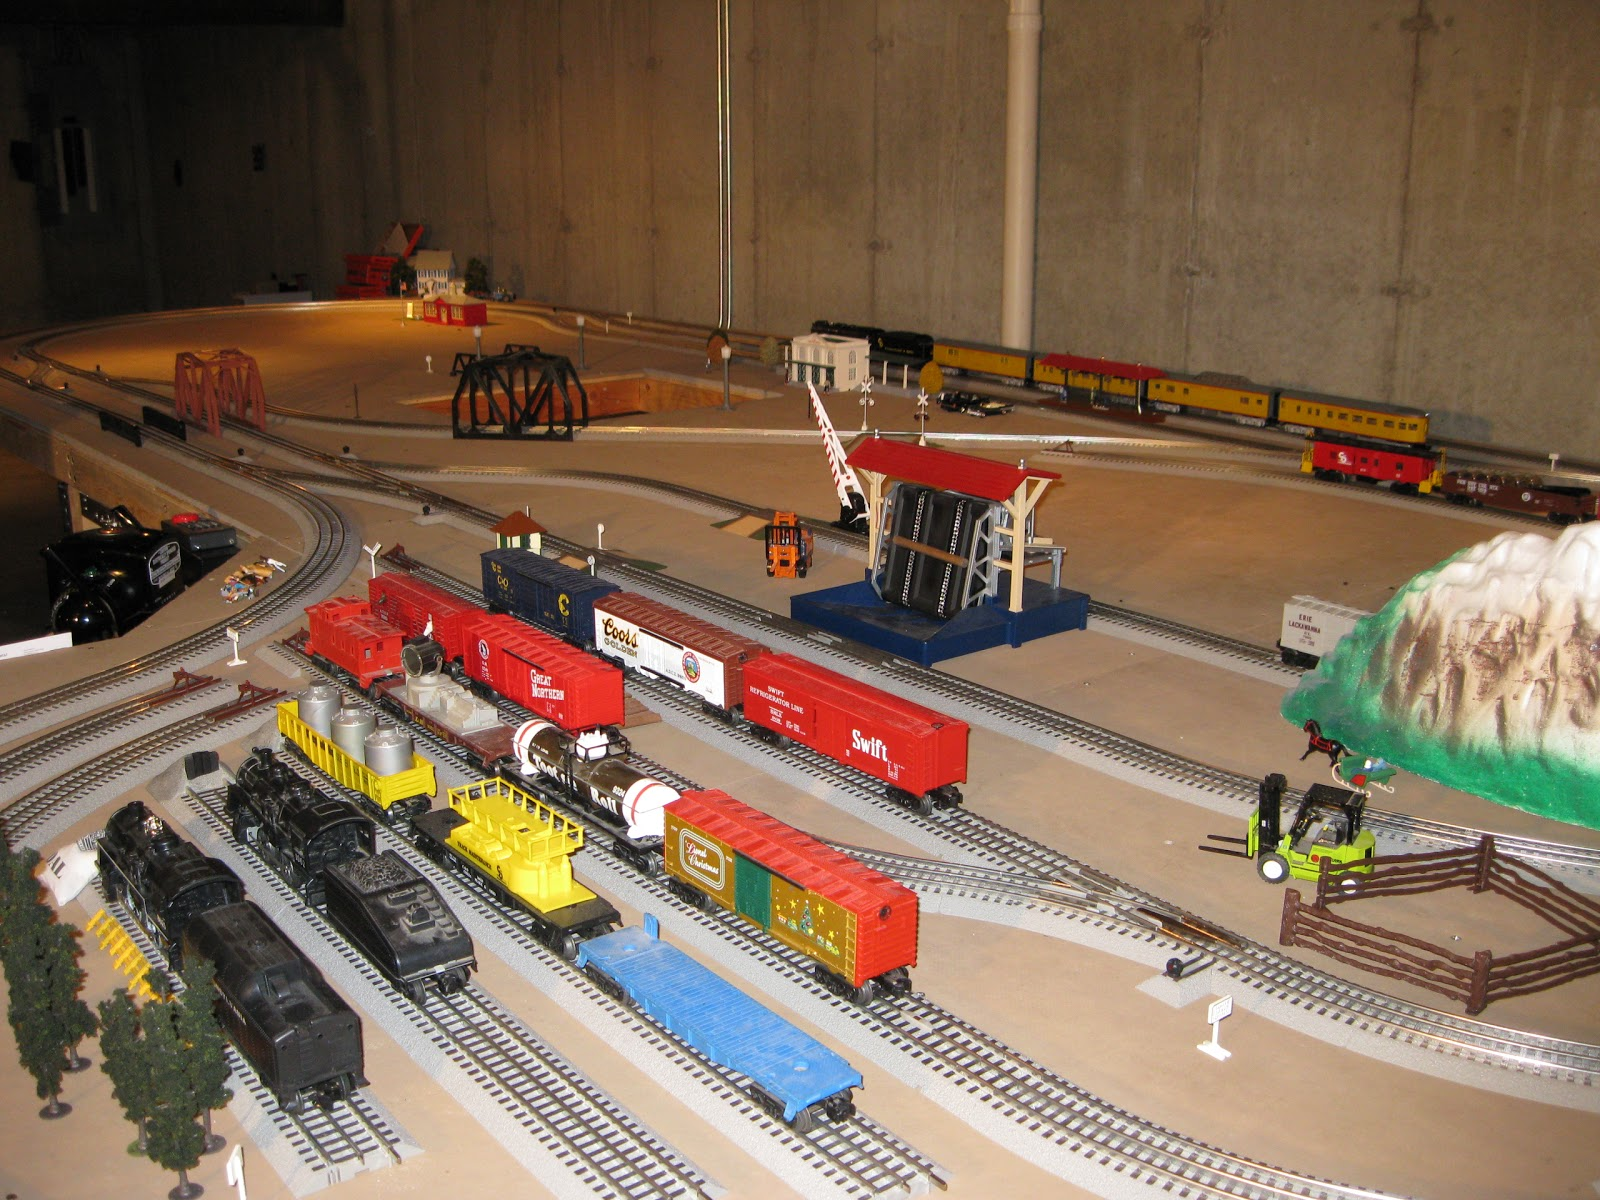 Merritt Wright Railroad 2010 Block Wiring Lionel Fastrack The Control Center Modern Zw With 2 180w Powerhouses 14 Switch Controllers 8 Uncoupler Activators 1 Operating Track Controller